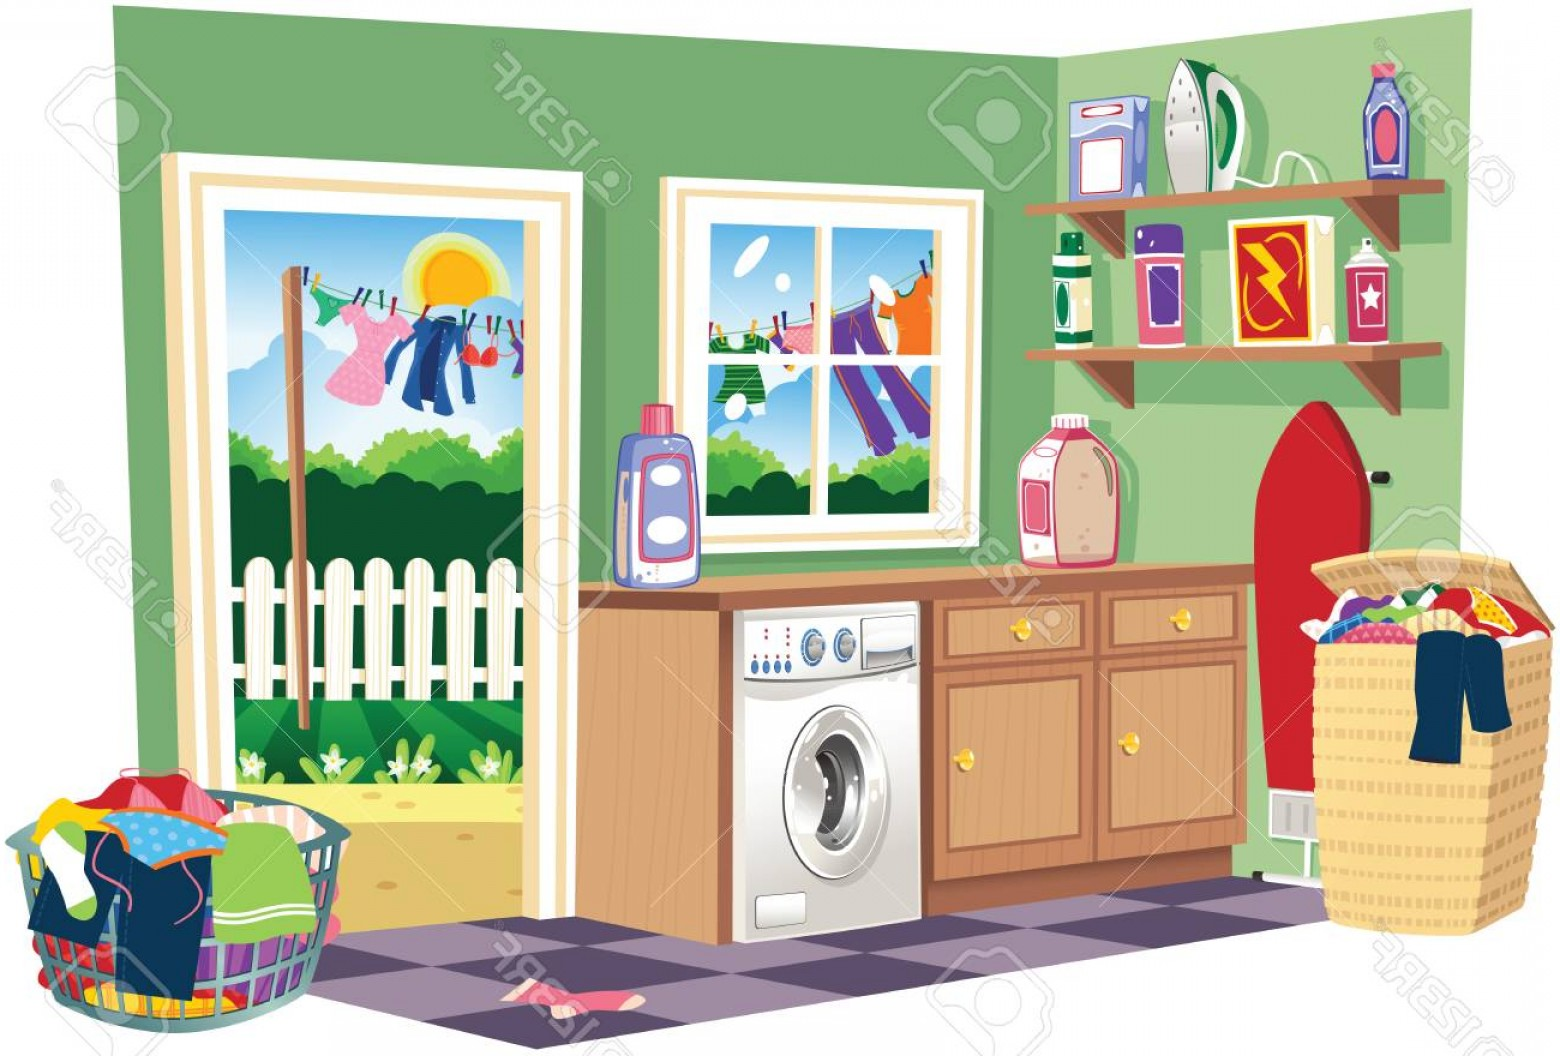 Laundry room clipart graphic royalty free library Photostock Vector A Cutaway Illustration Of A Laundry Room On ... graphic royalty free library